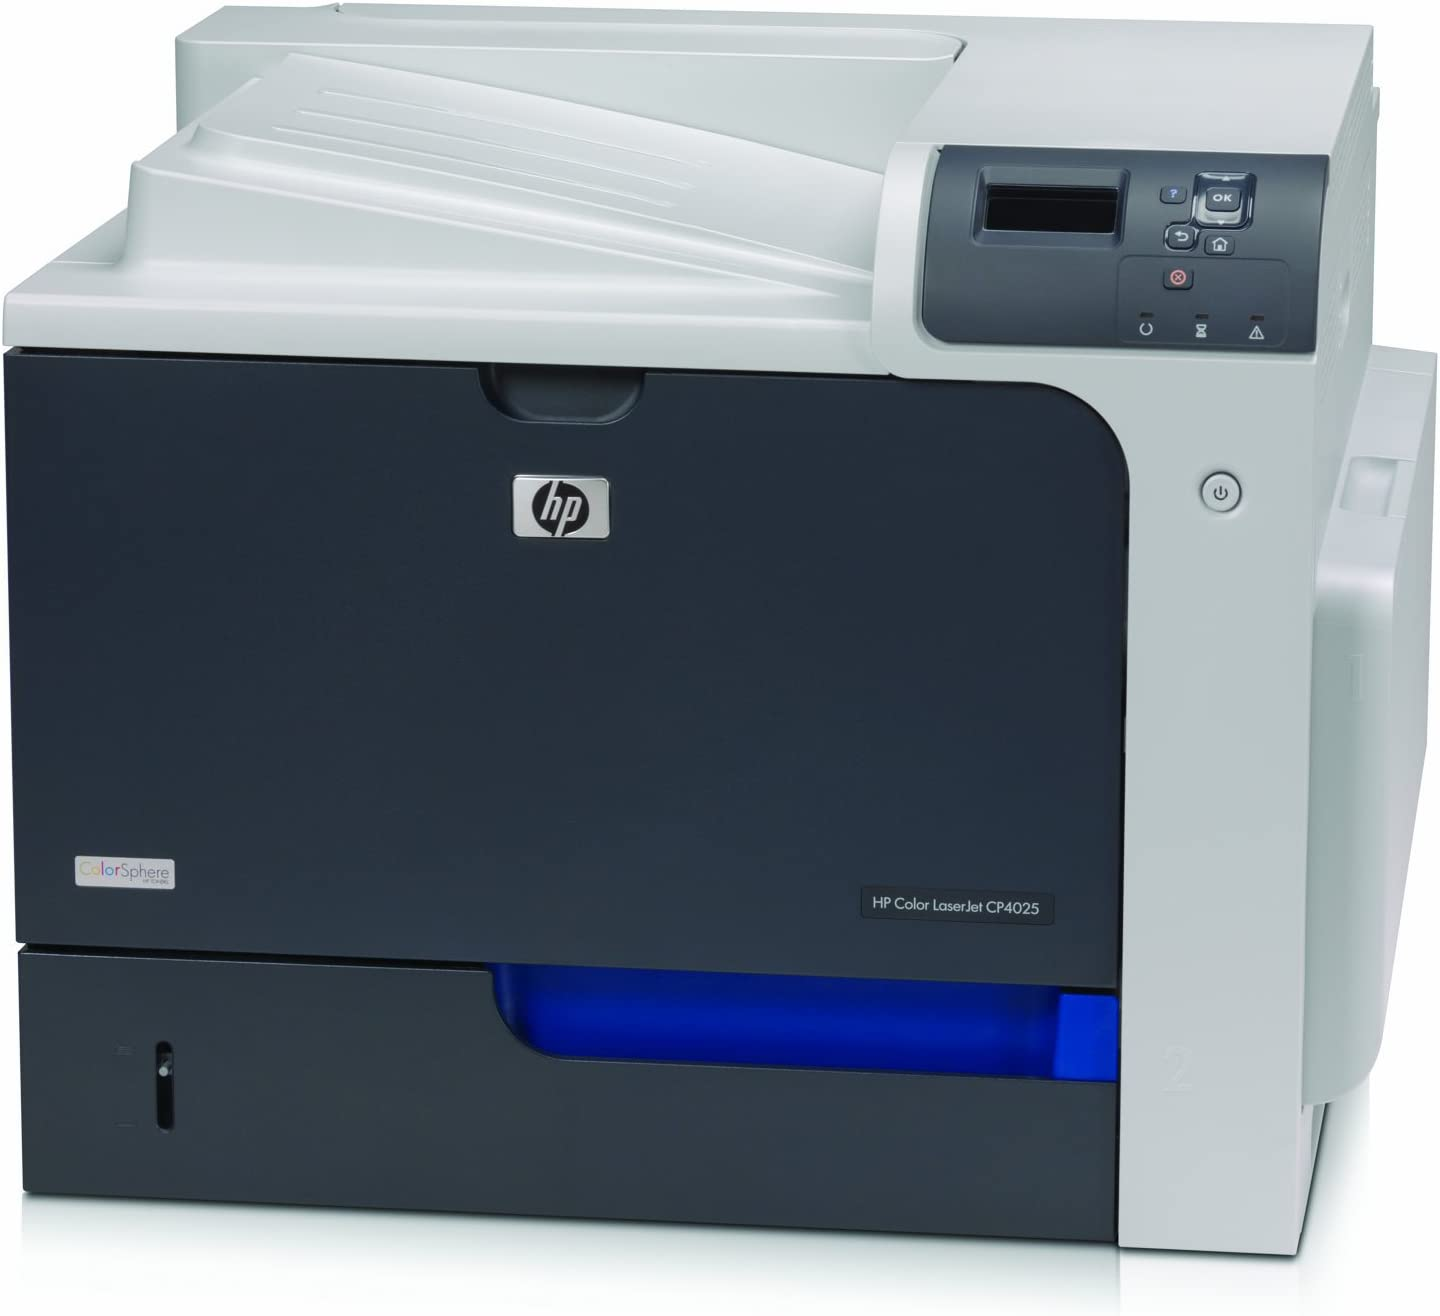 Amazon.com: HP Color LaserJet Enterprise CP4025dn Printer ...